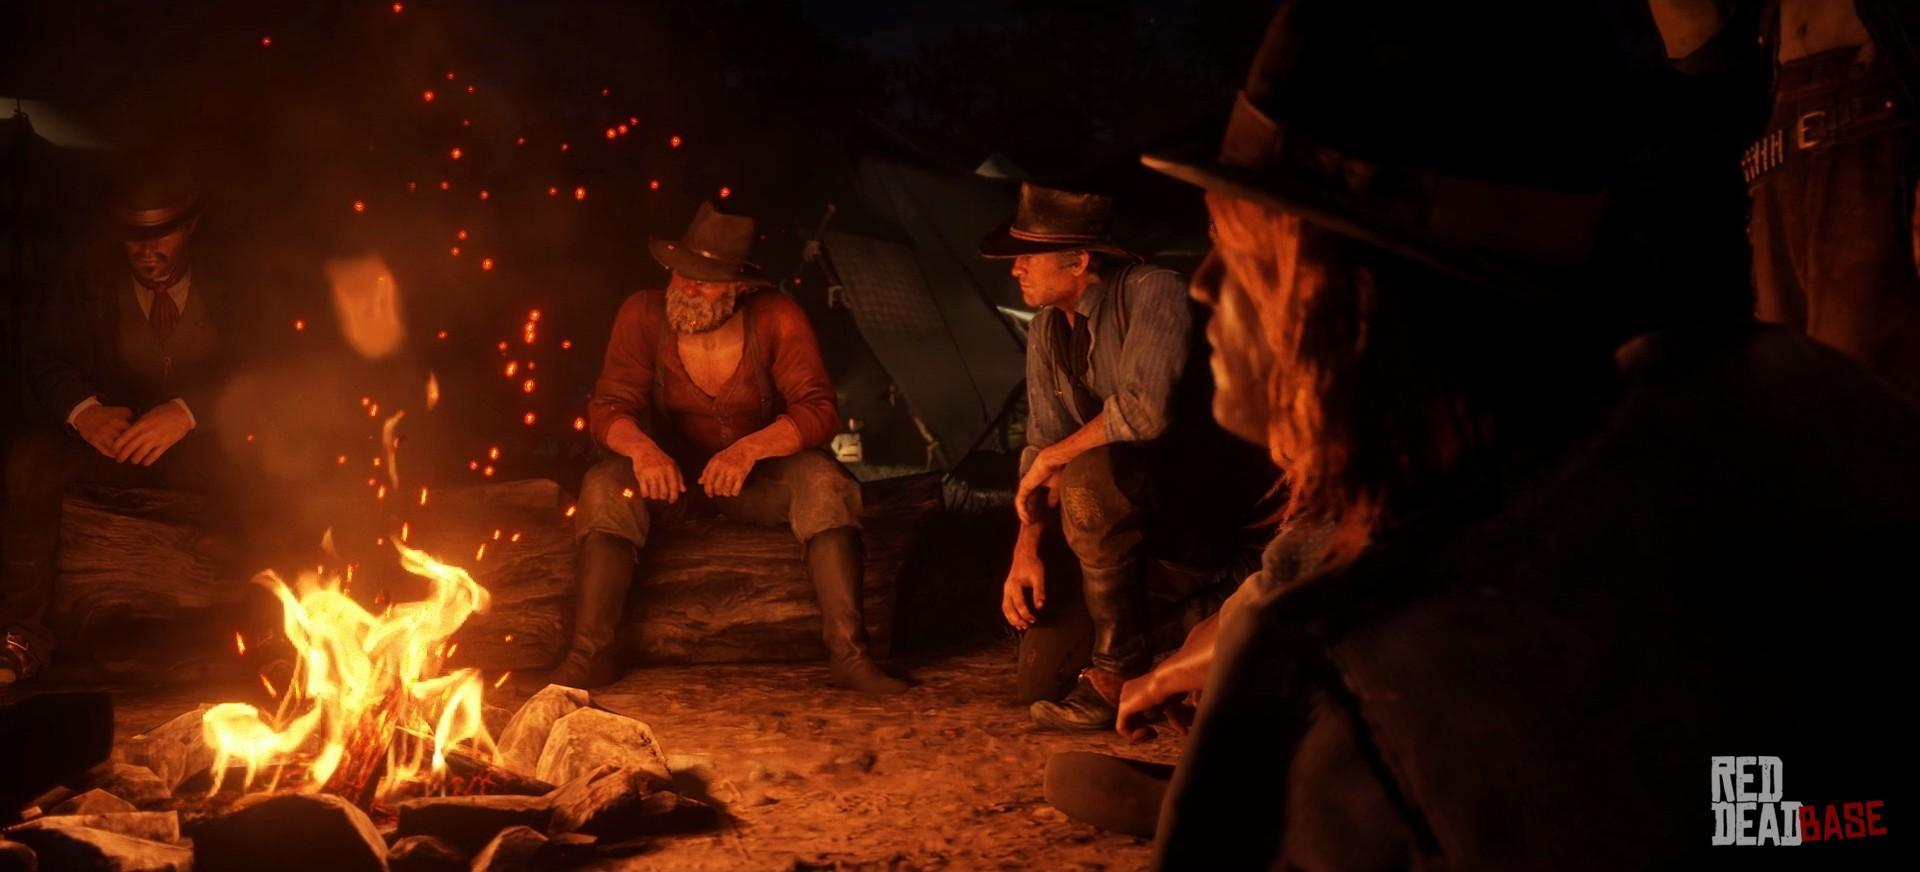 Uncle Red Dead Redemption 2 Characters Red Dead